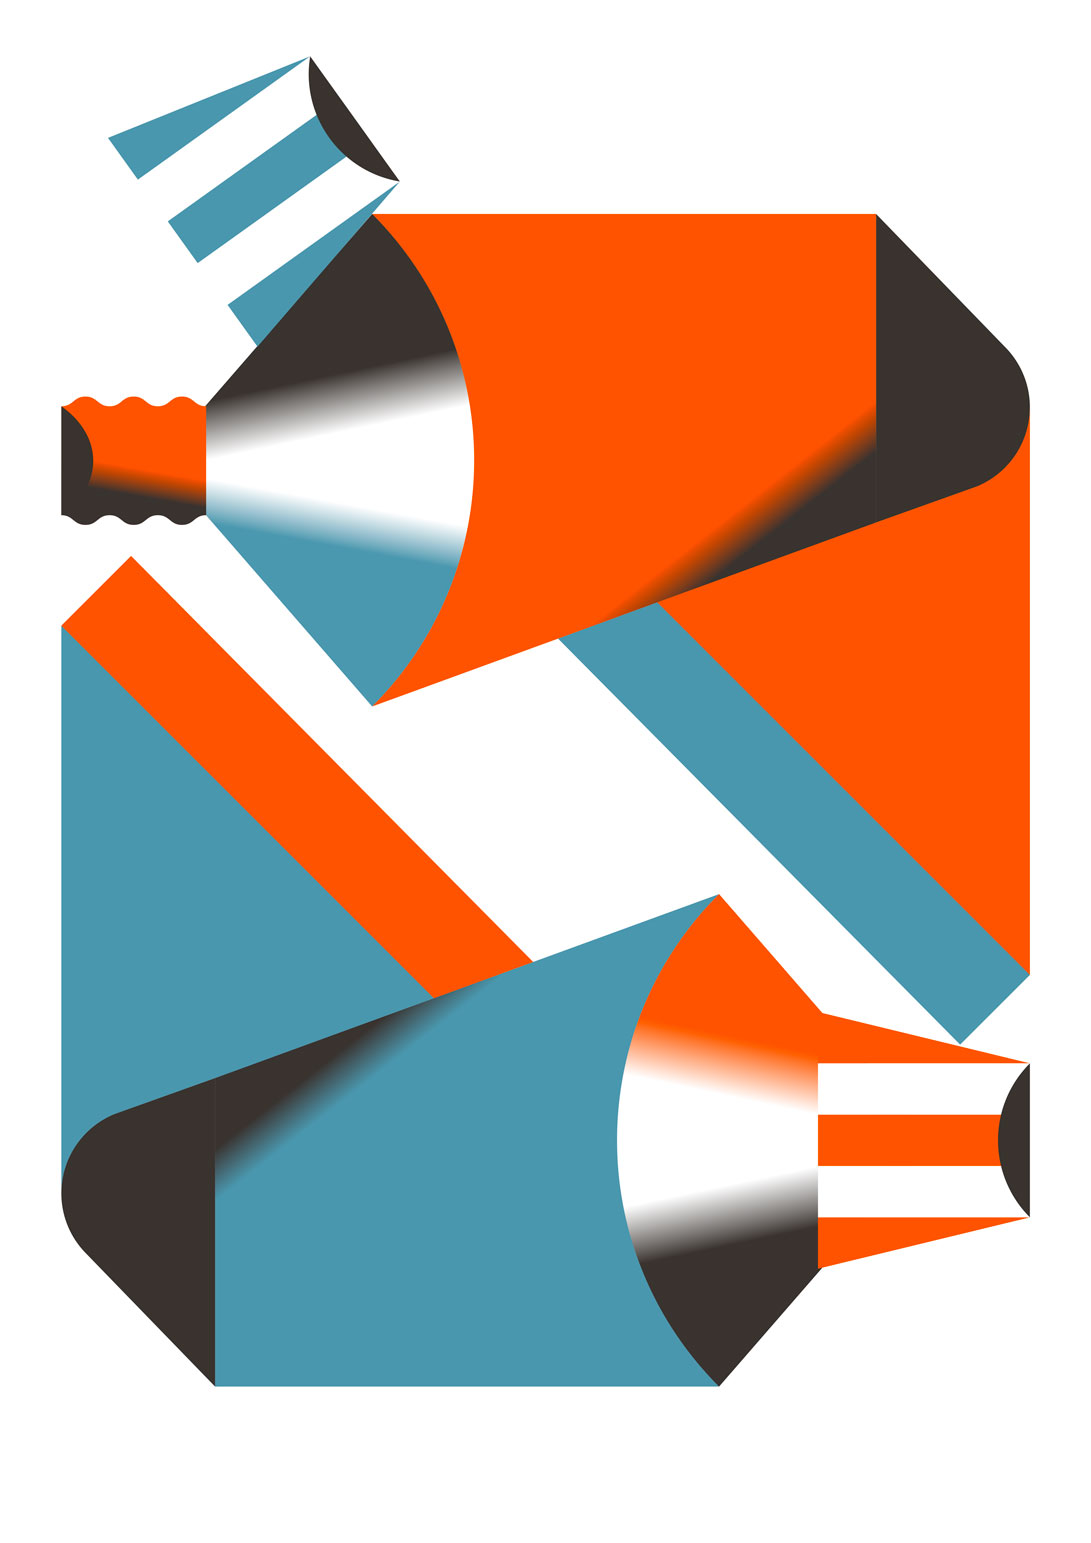 Digital vector illustration of two tubes in a vibrant orange and blue.